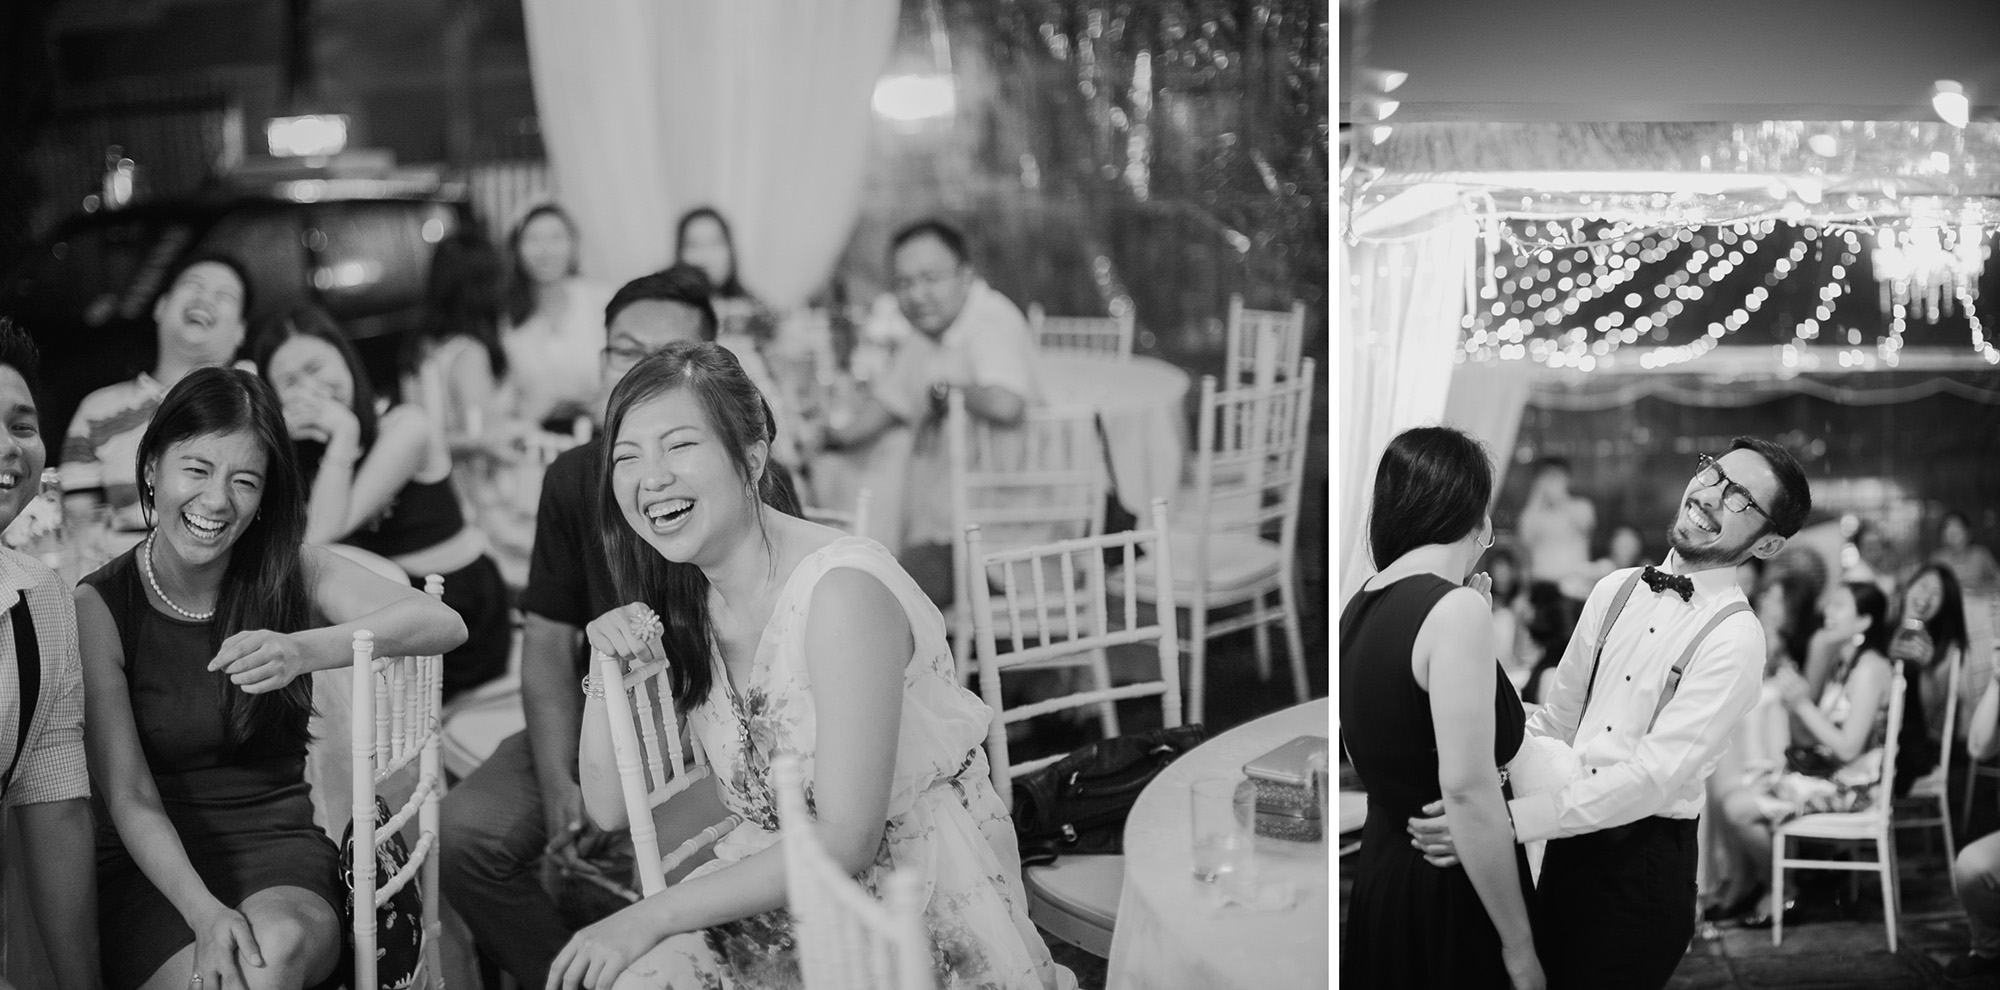 97-hellojanelee-sam grace-malaysia-wedding-day